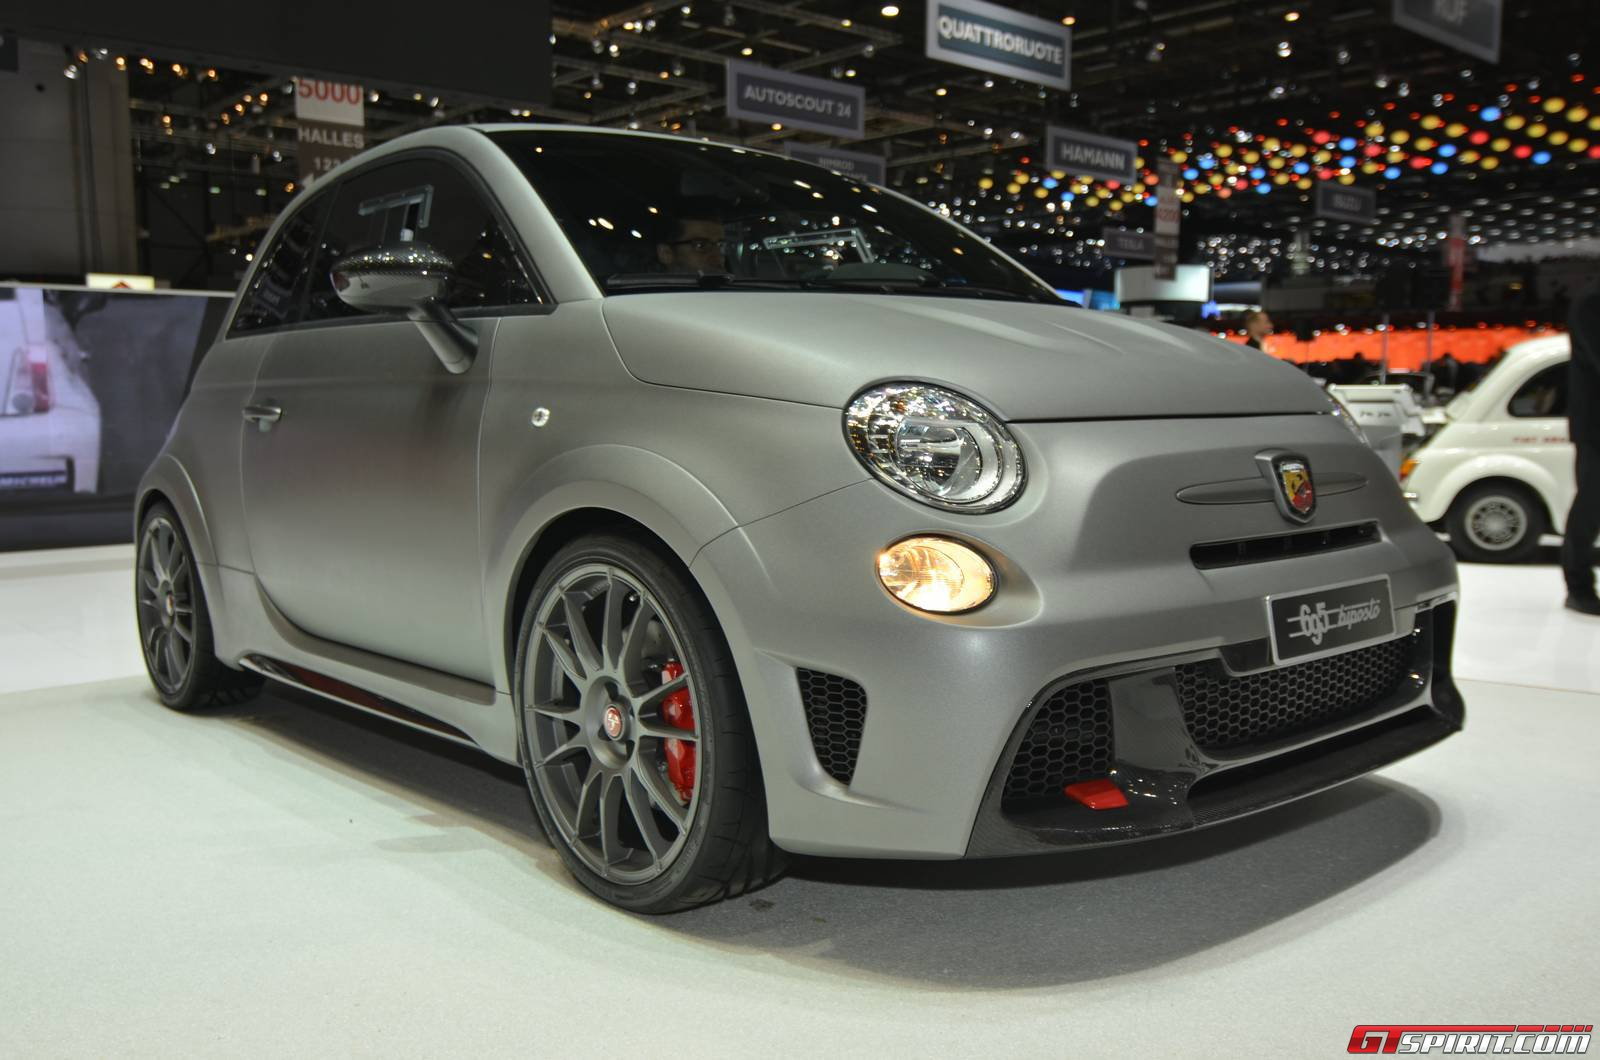 Geneva 2014 Abarth 695 Biposto together with Mitglied additionally Lego Vw Golf Gti 137027 in addition Icones Des Annees 60 Fiat 500 Vespa additionally Renault 12. on fiat 500 club